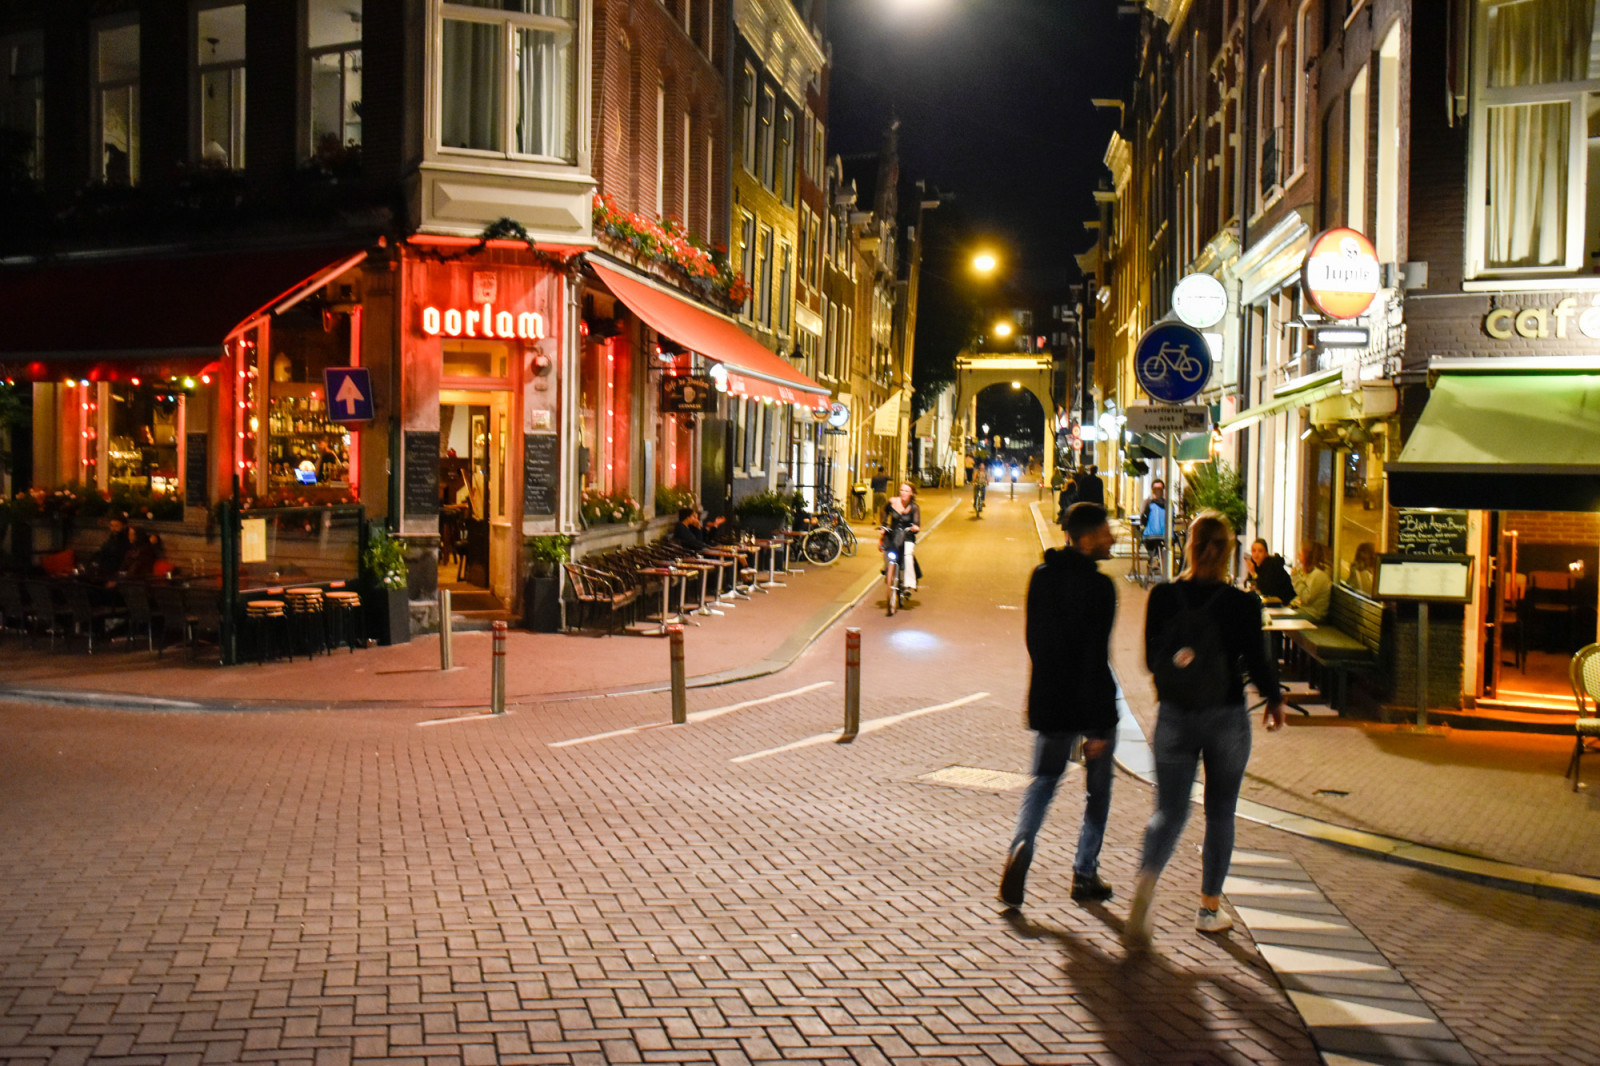 Amsterdam photo tour by night